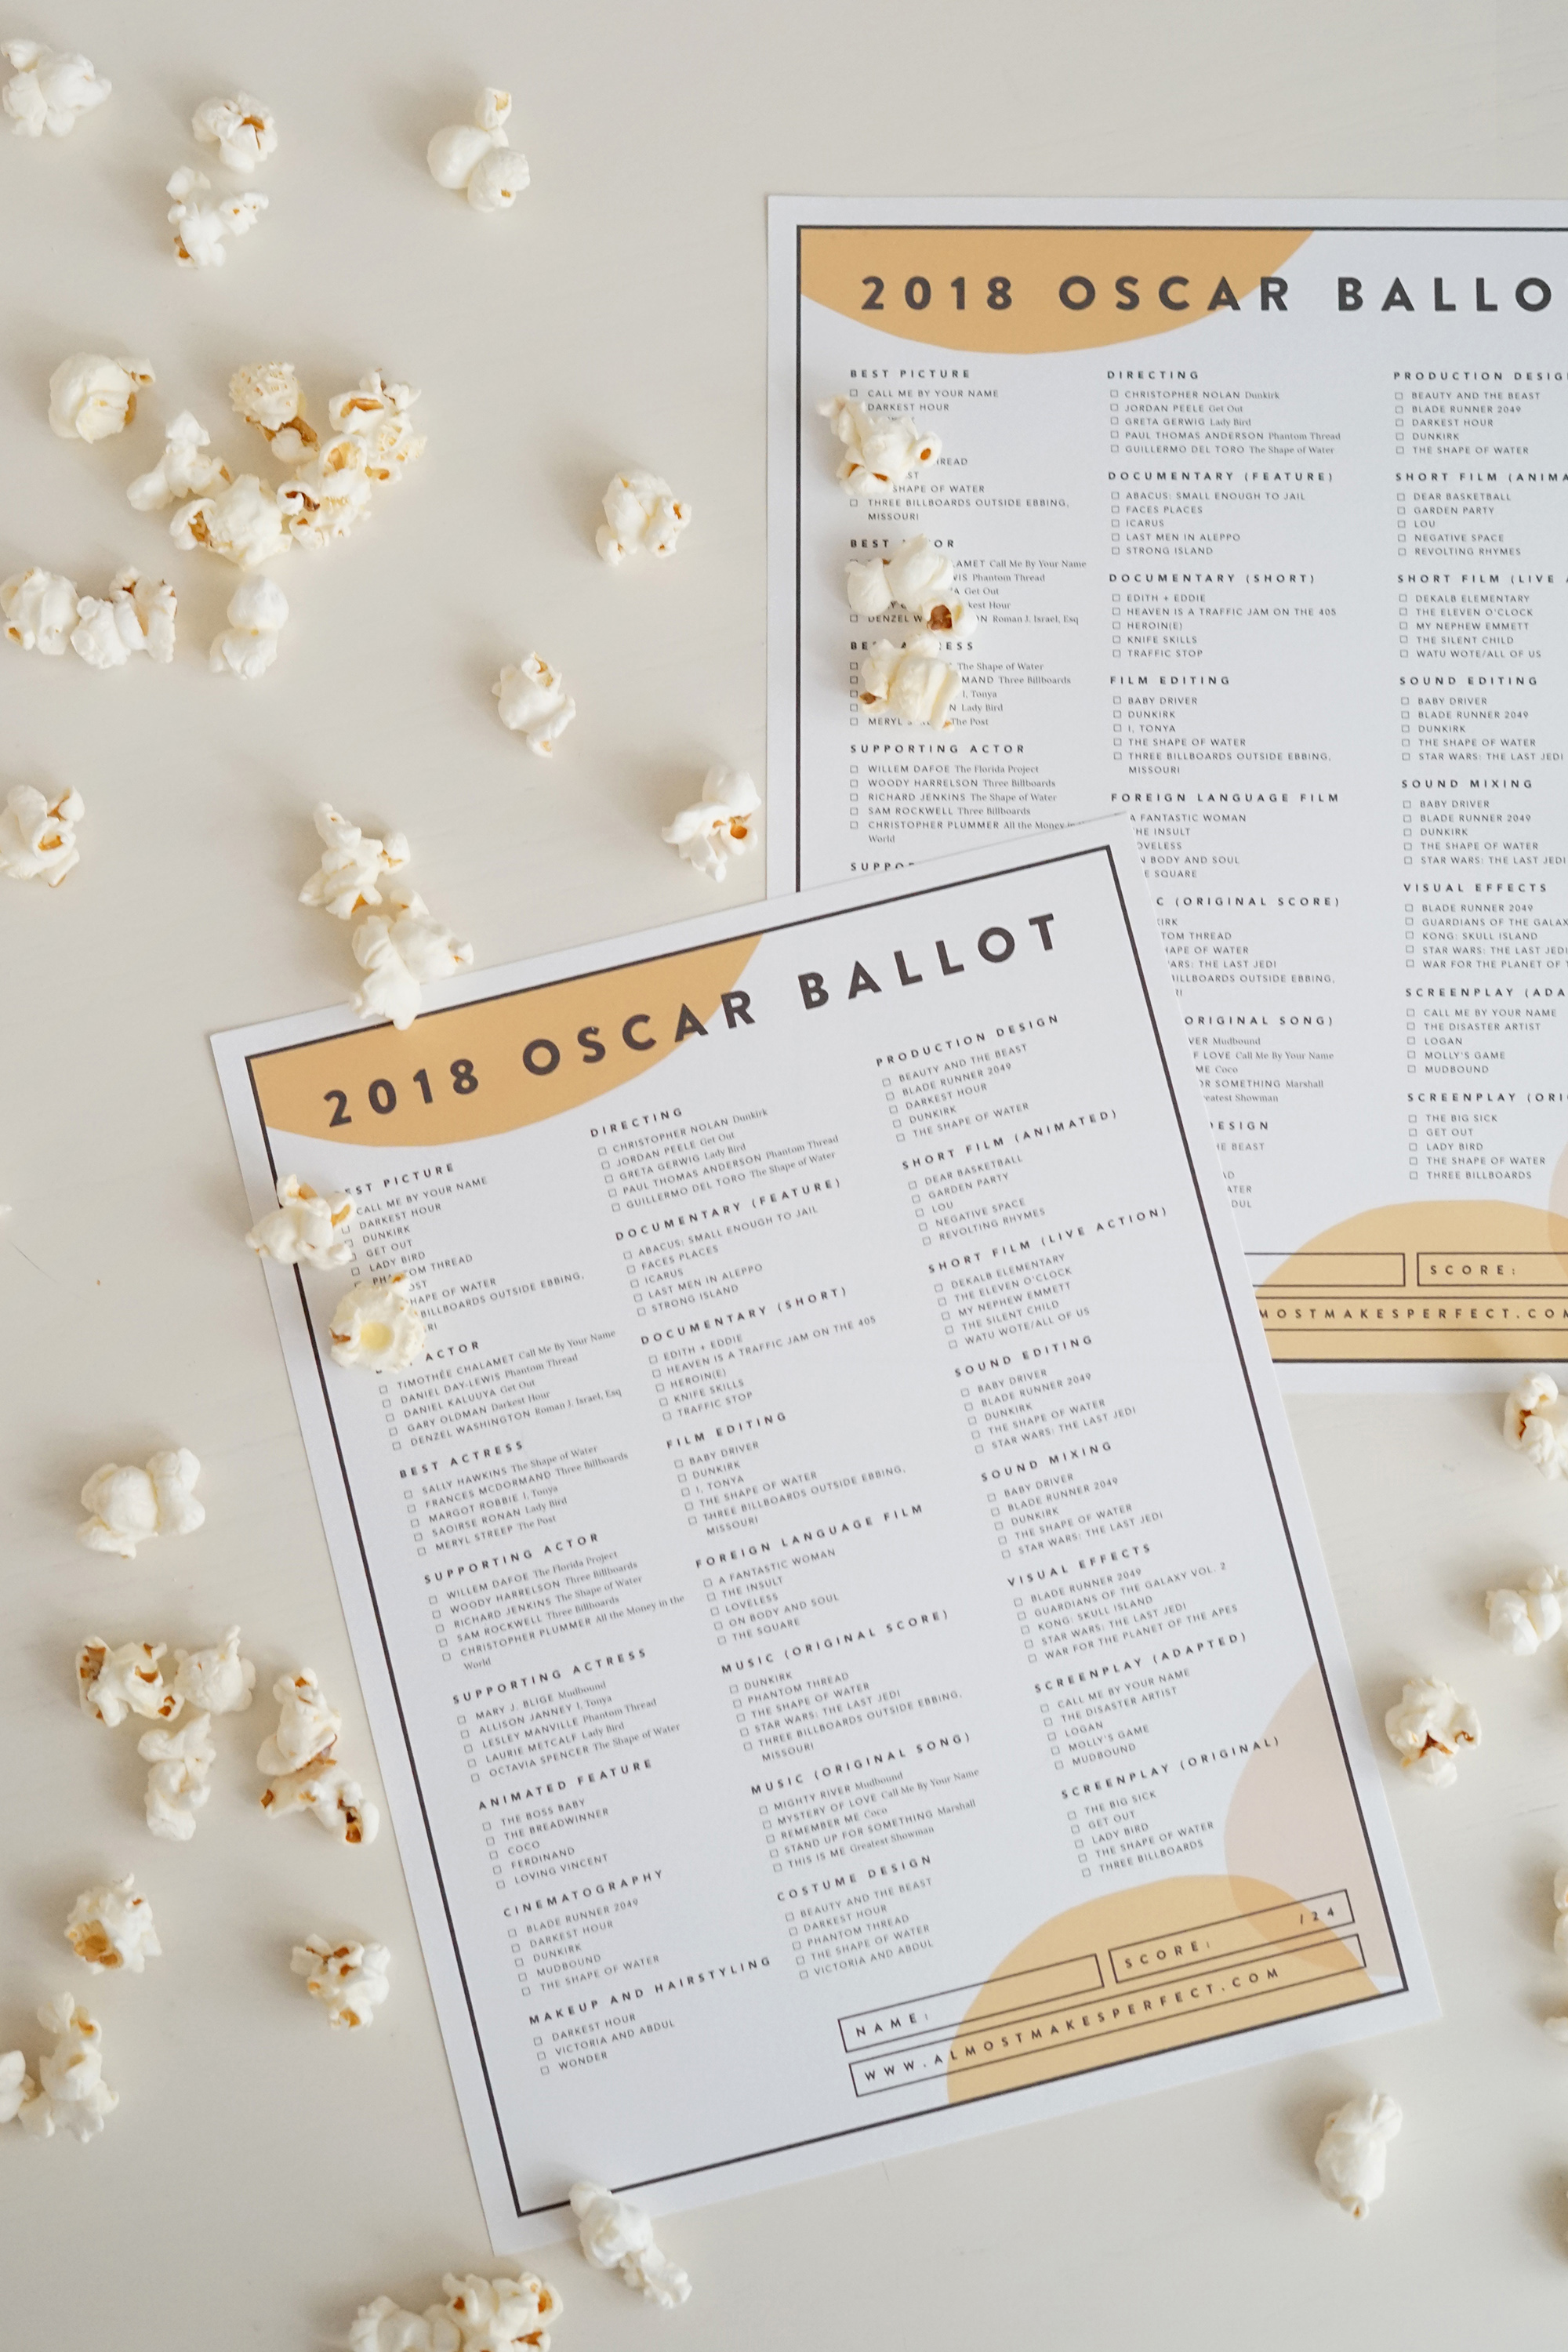 image relating to Golden Globe Ballot Printable titled Oscars Voting Sheet